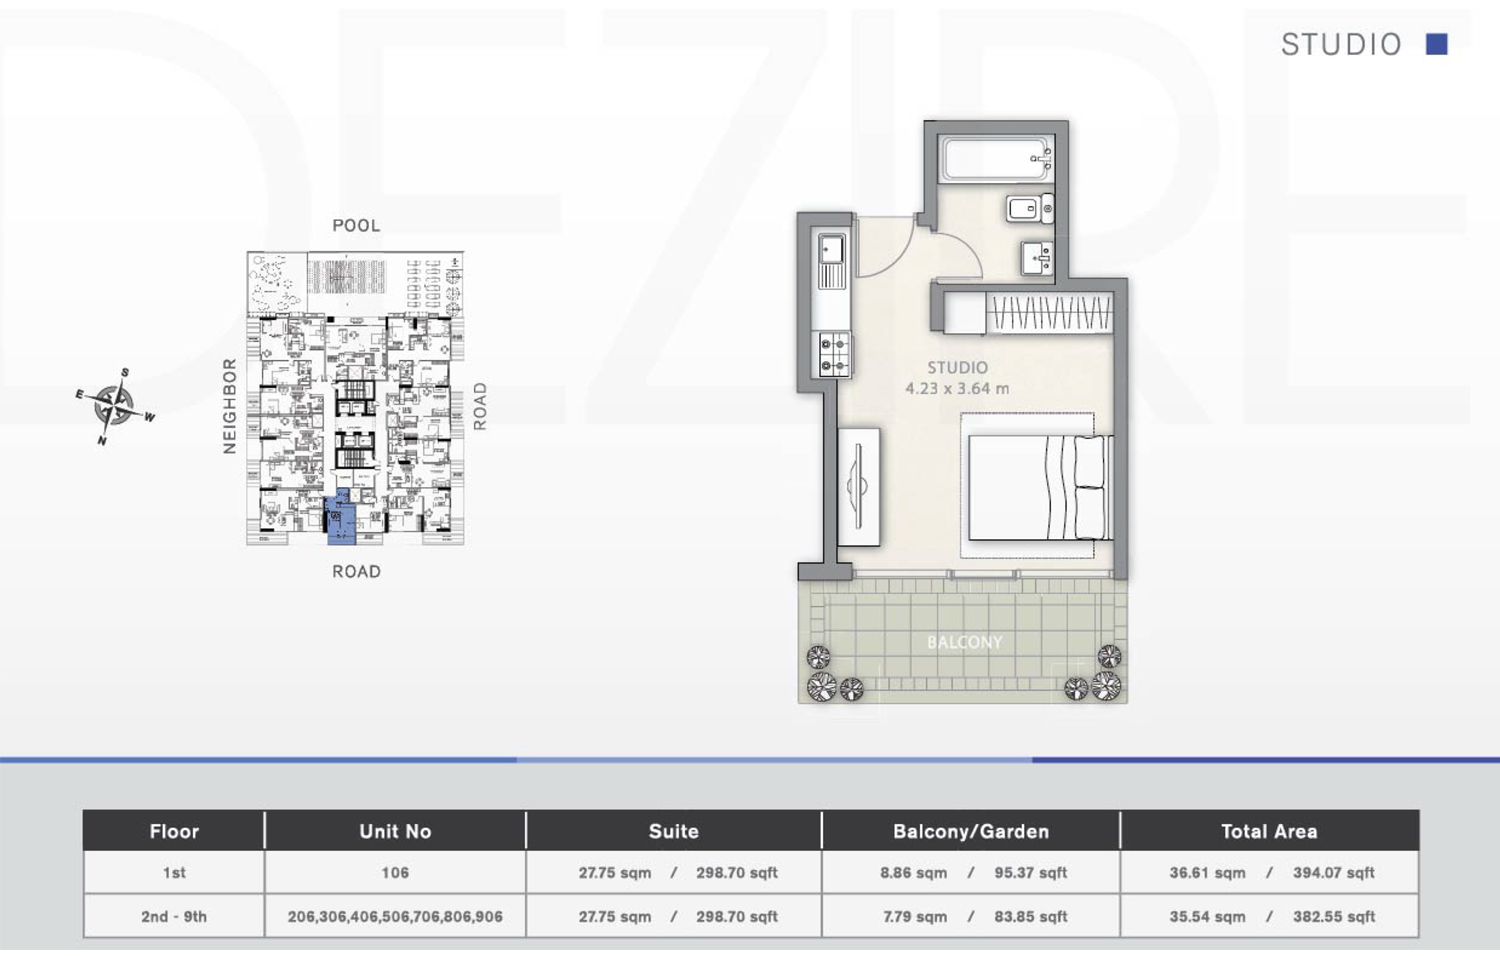 Studio Floor Plan 2